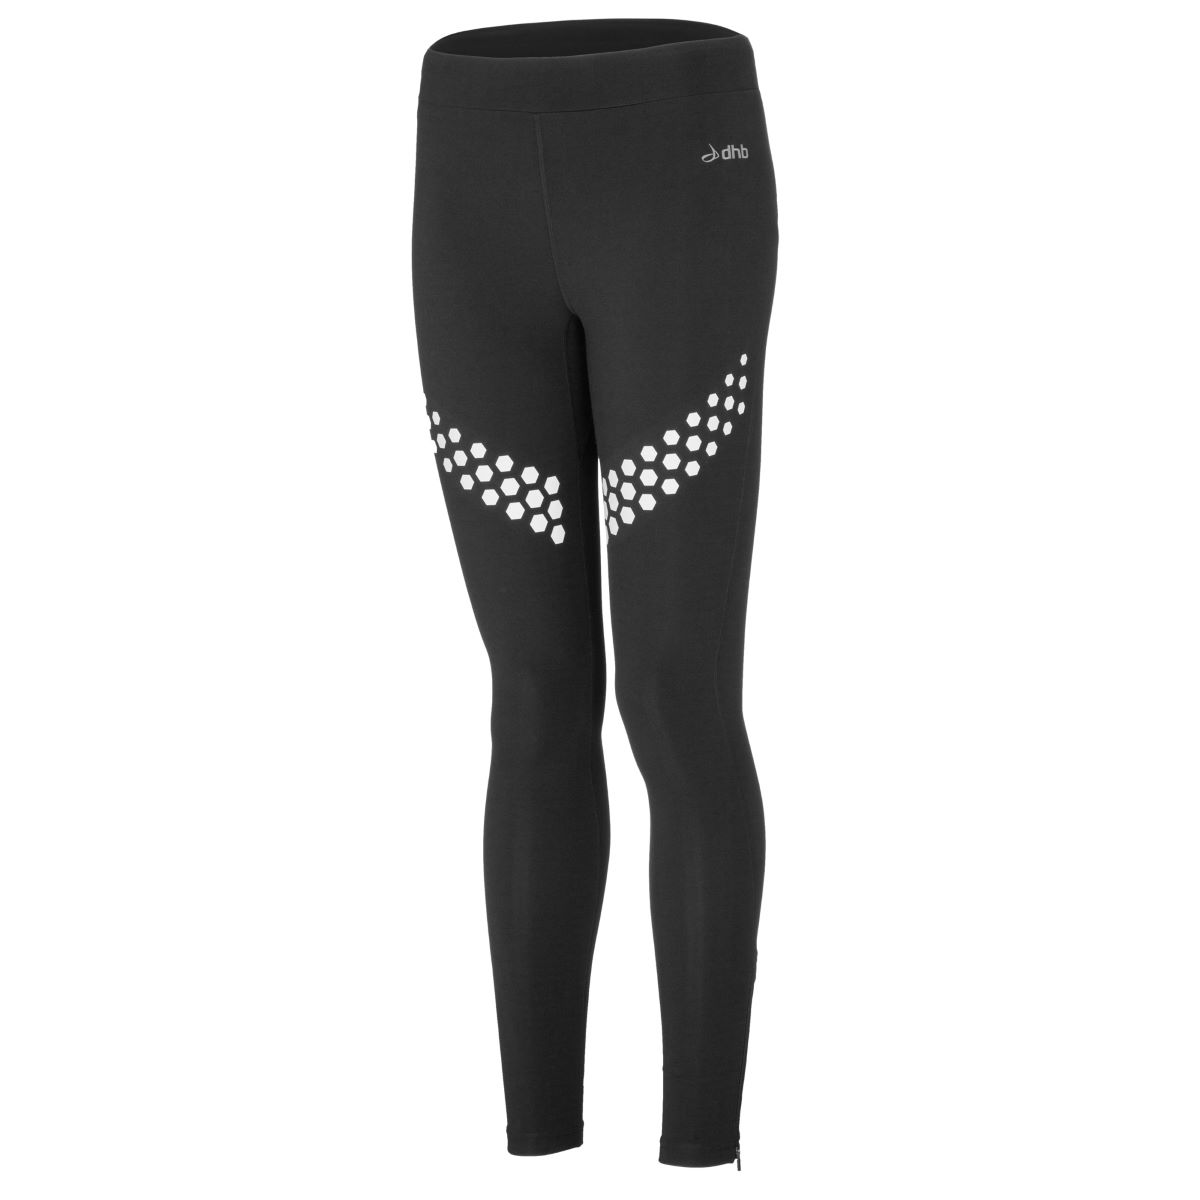 Collant Femme dhb Flashlight Run - 16 Noir Collants